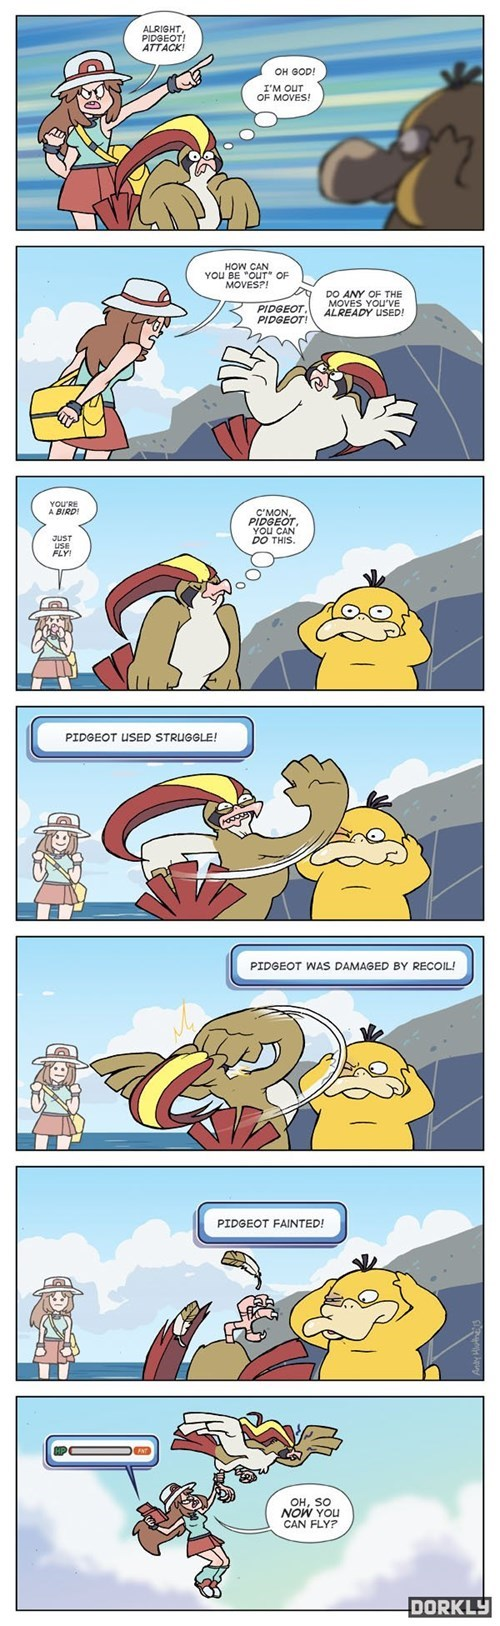 Pokémon dorkly pidgeot web comics - 7834834432